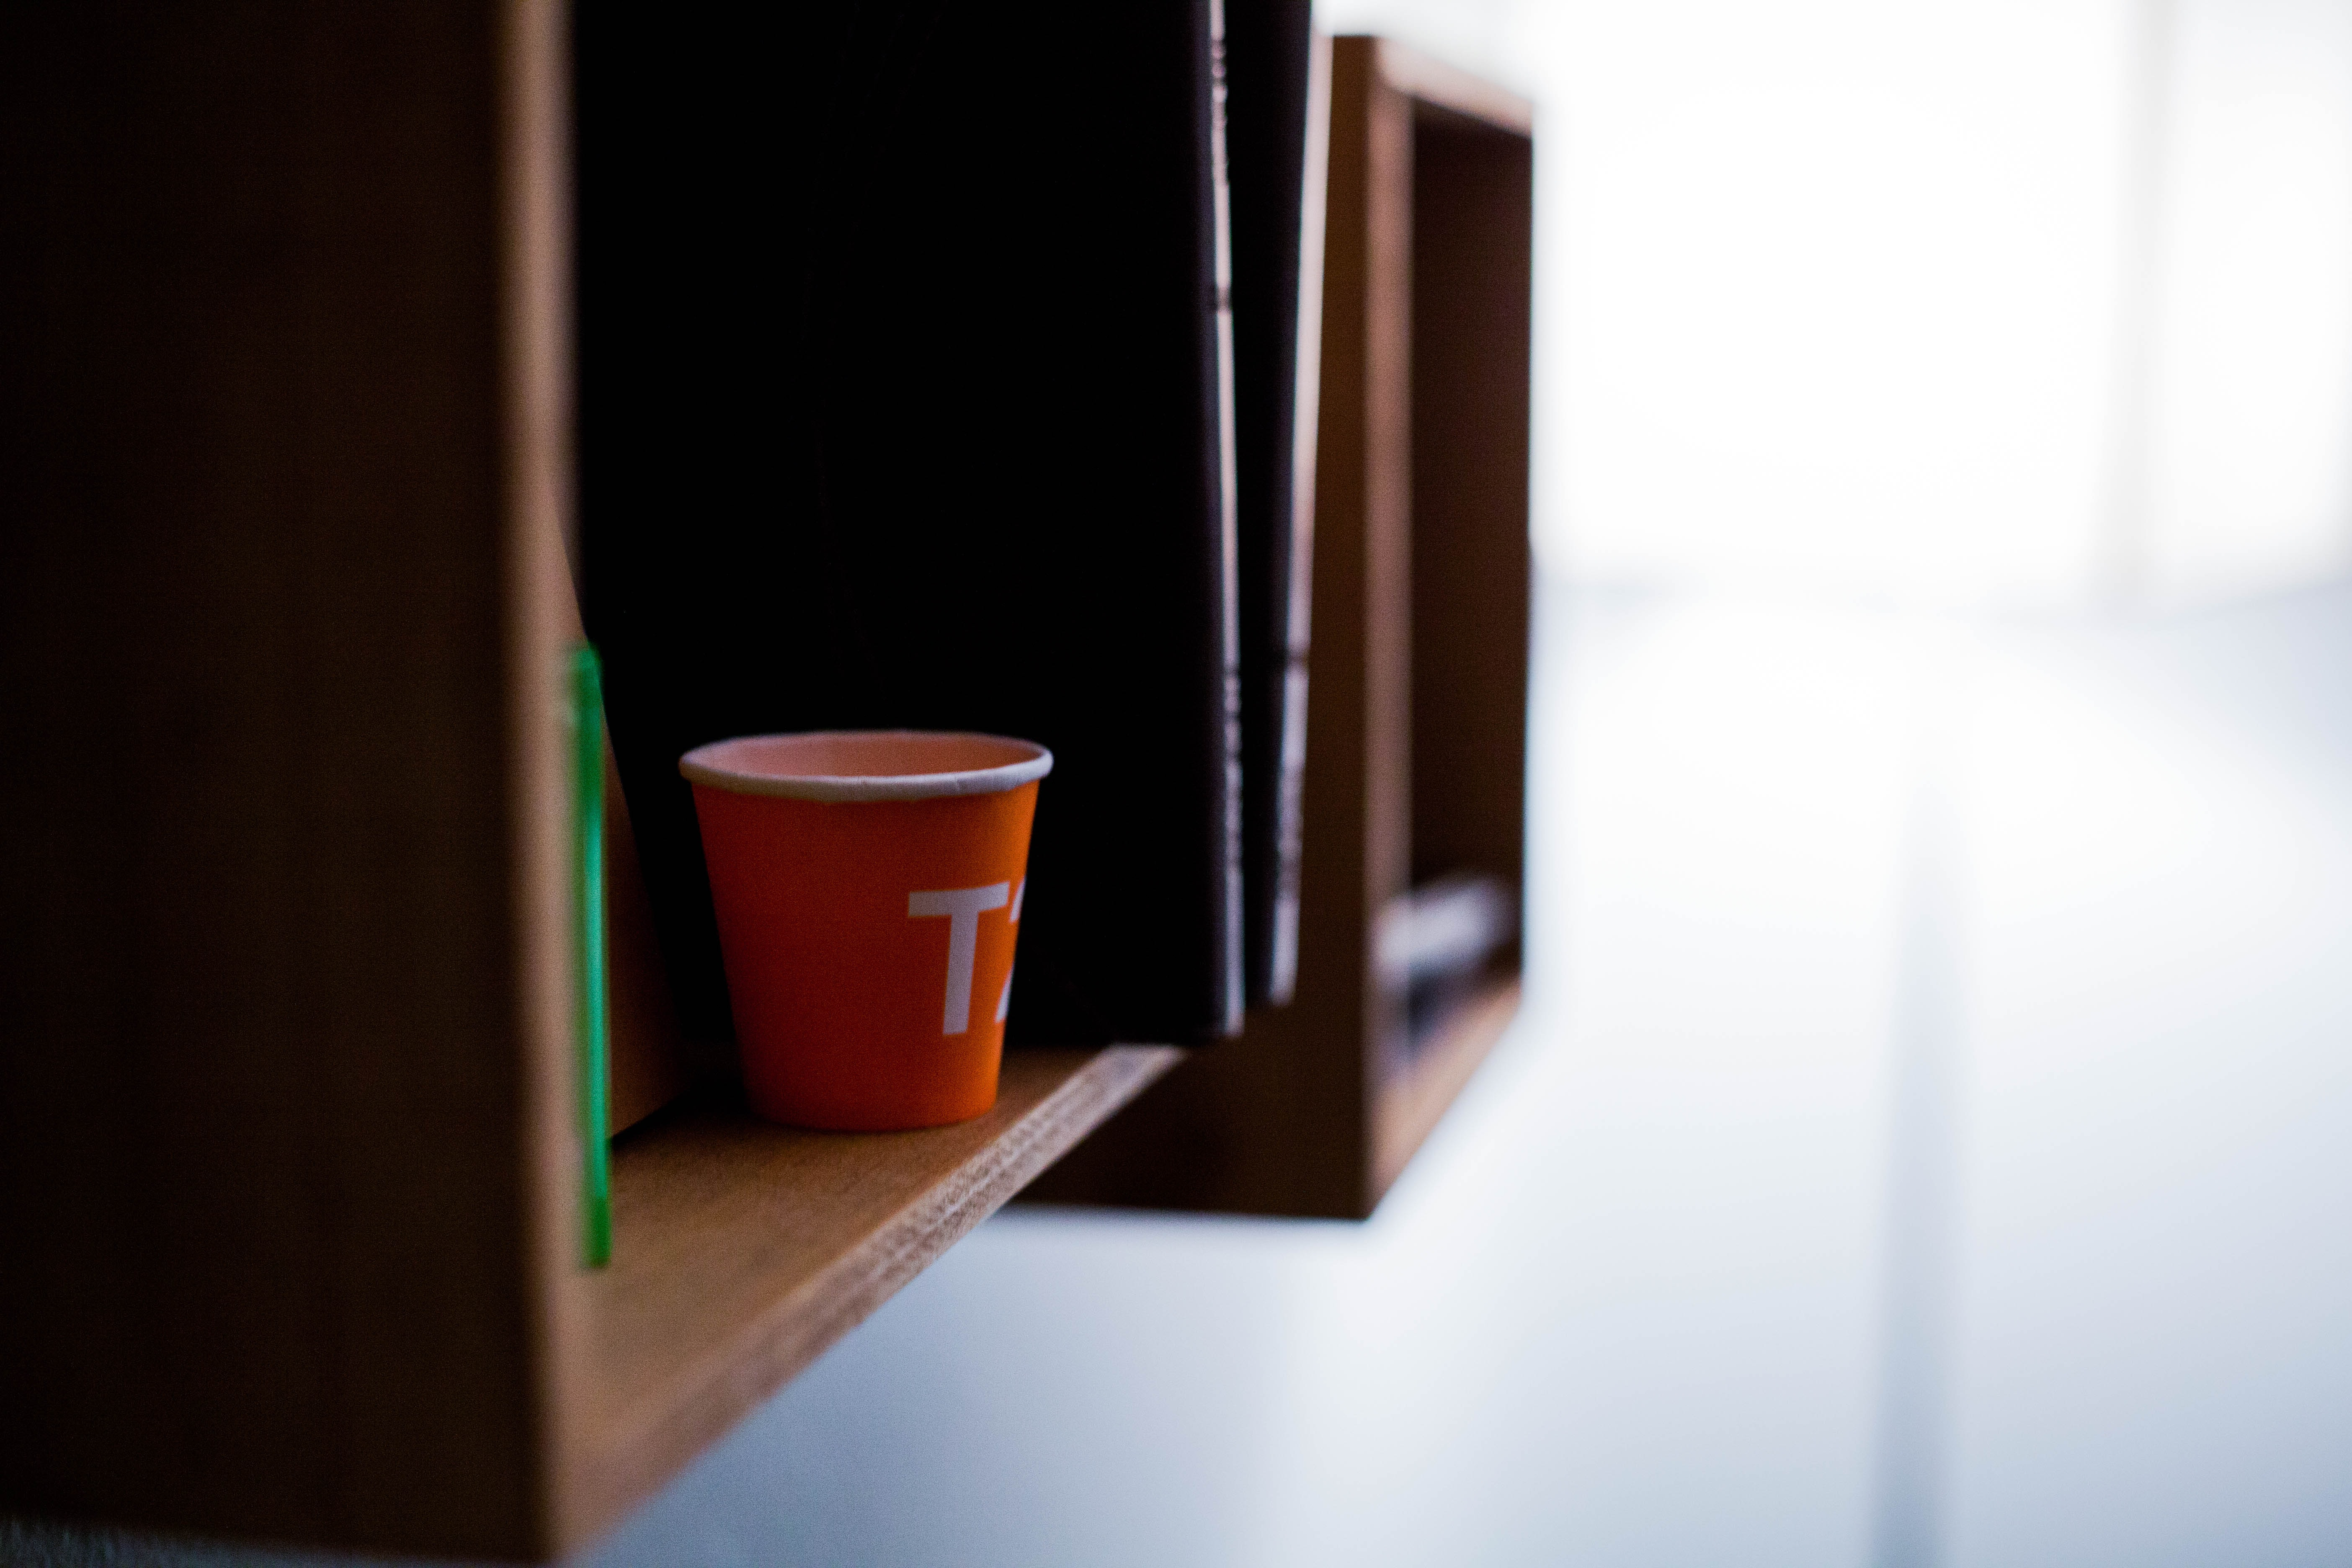 red disposable cup on brown wooden shelf